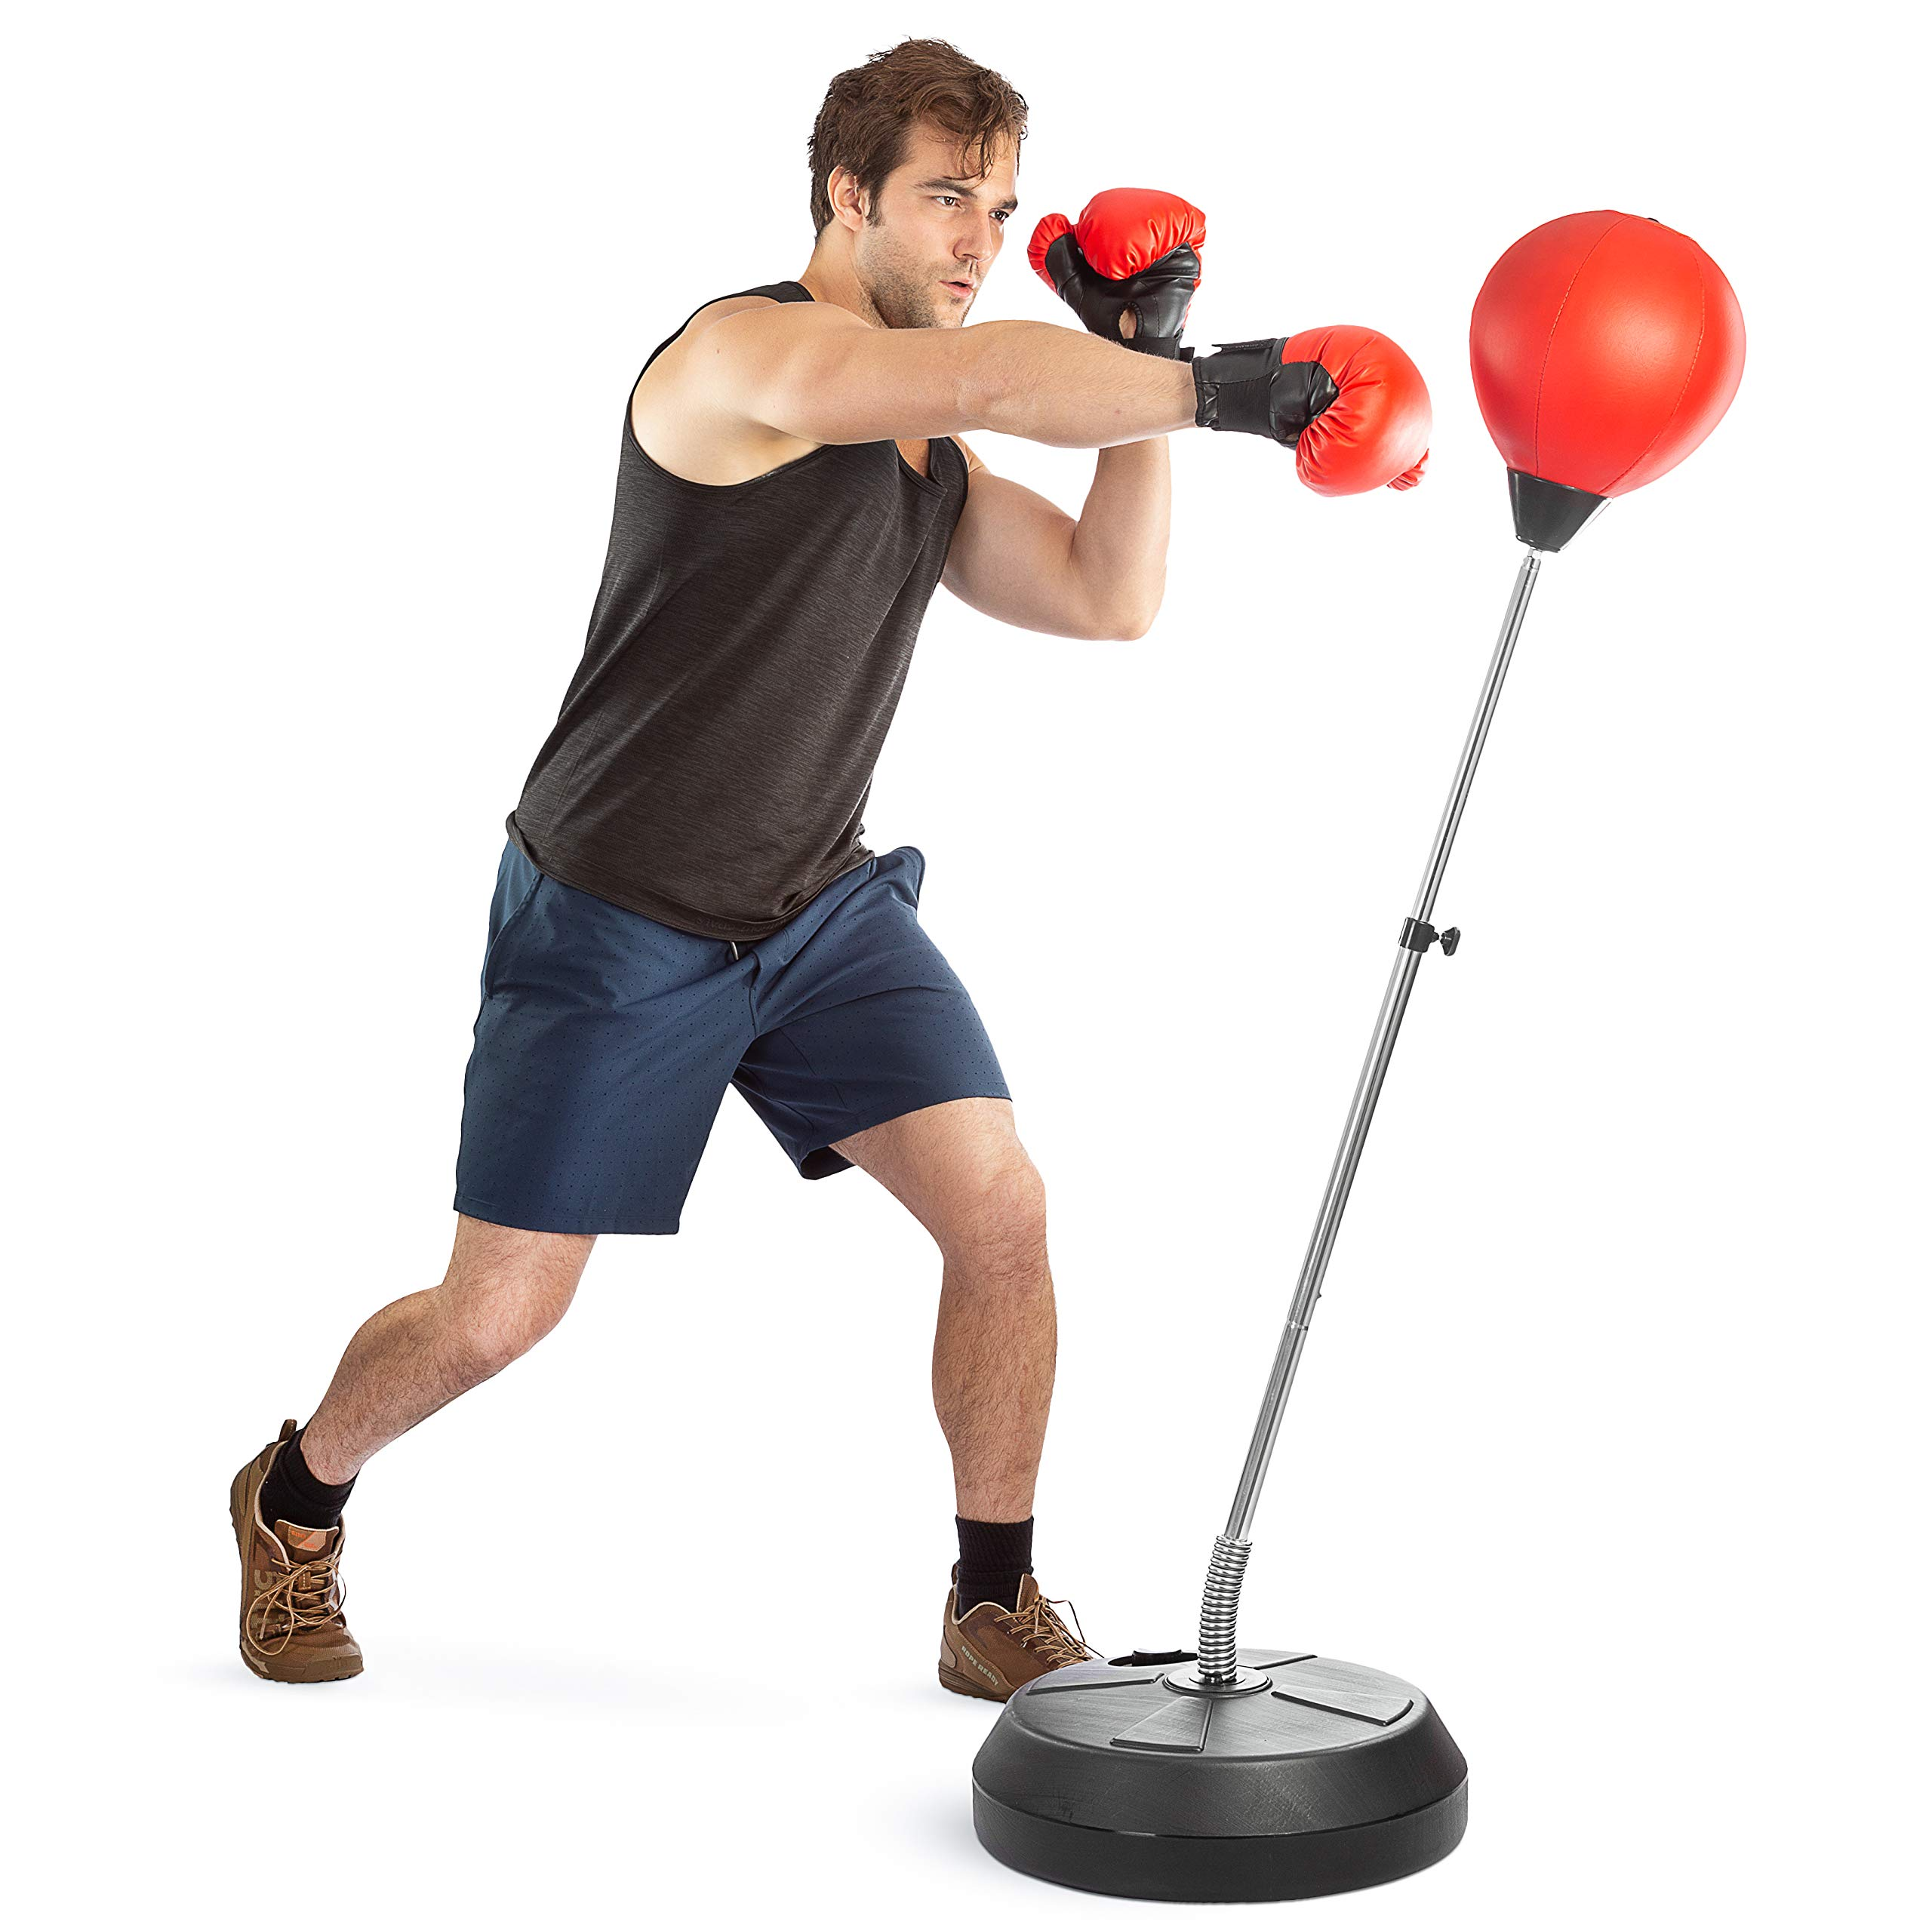 Tech Tools Boxing Ball Set with Punching Bag, Boxing Gloves, Hand Pump & Adjustable Height Stand - Strong Durable Spring Withstands Tough Hits for Stress Relief & Fitness (Adult) by Tech Tools